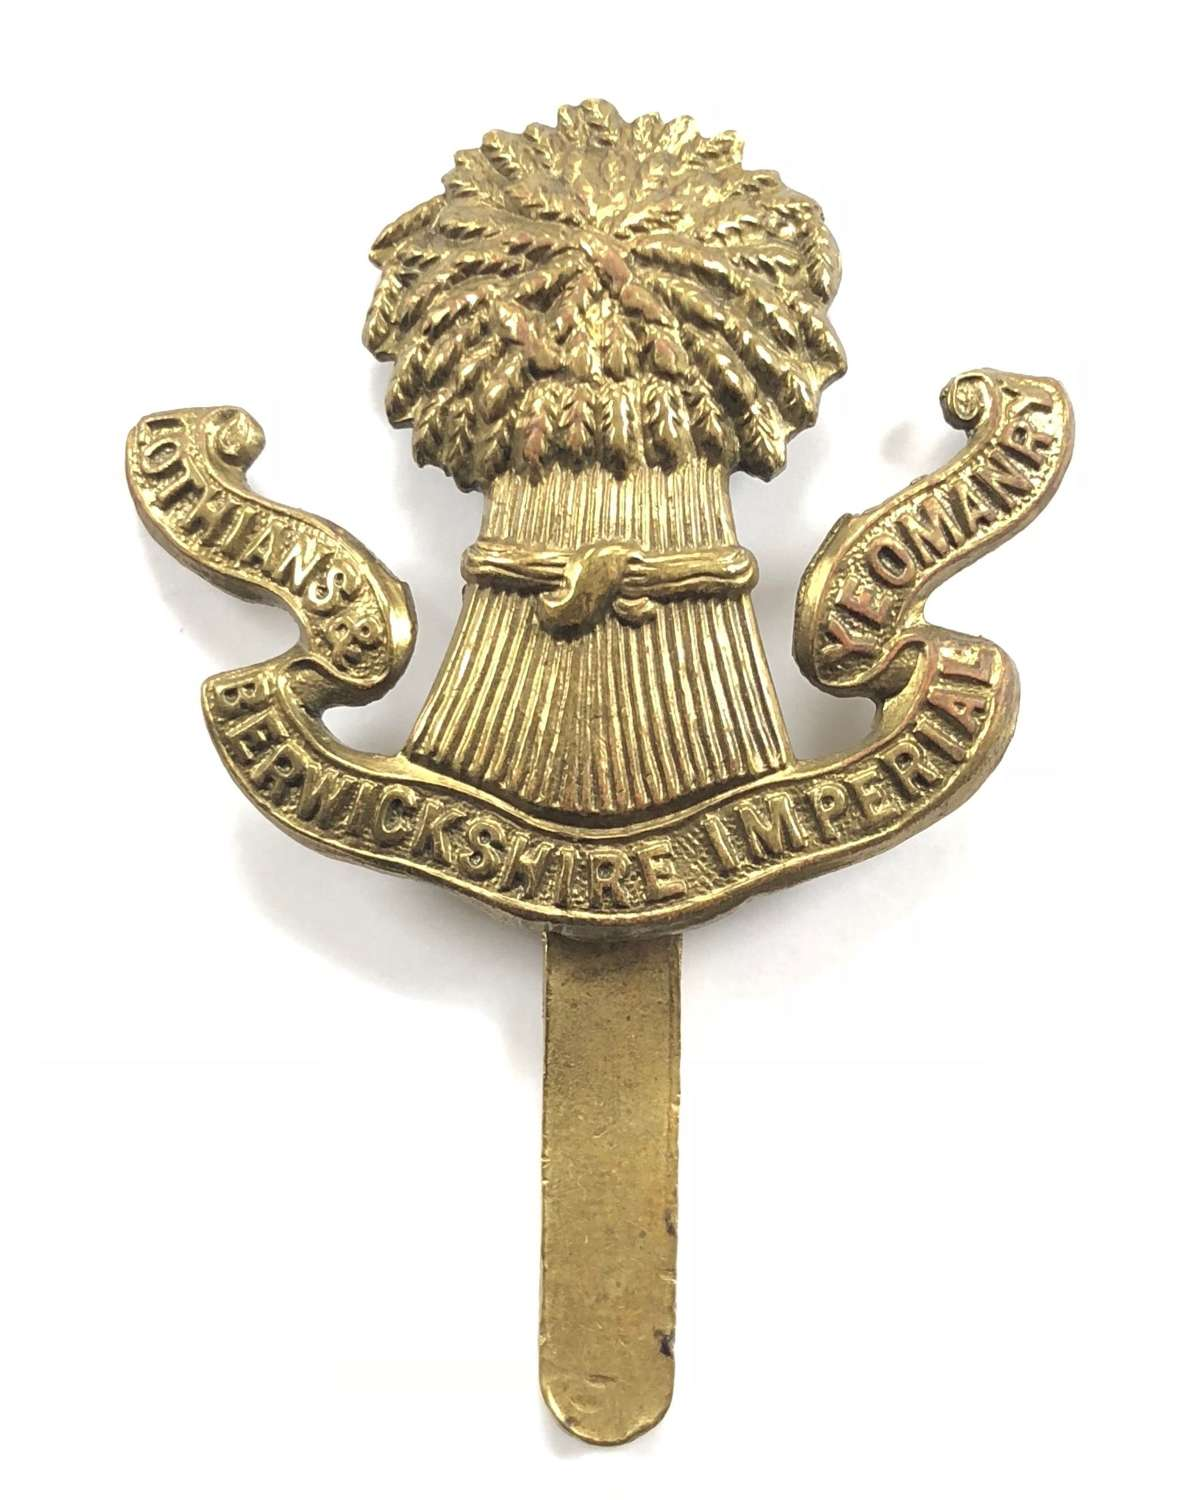 Lothians and Berwickshire Imperial Yeomanry OR's cap badge